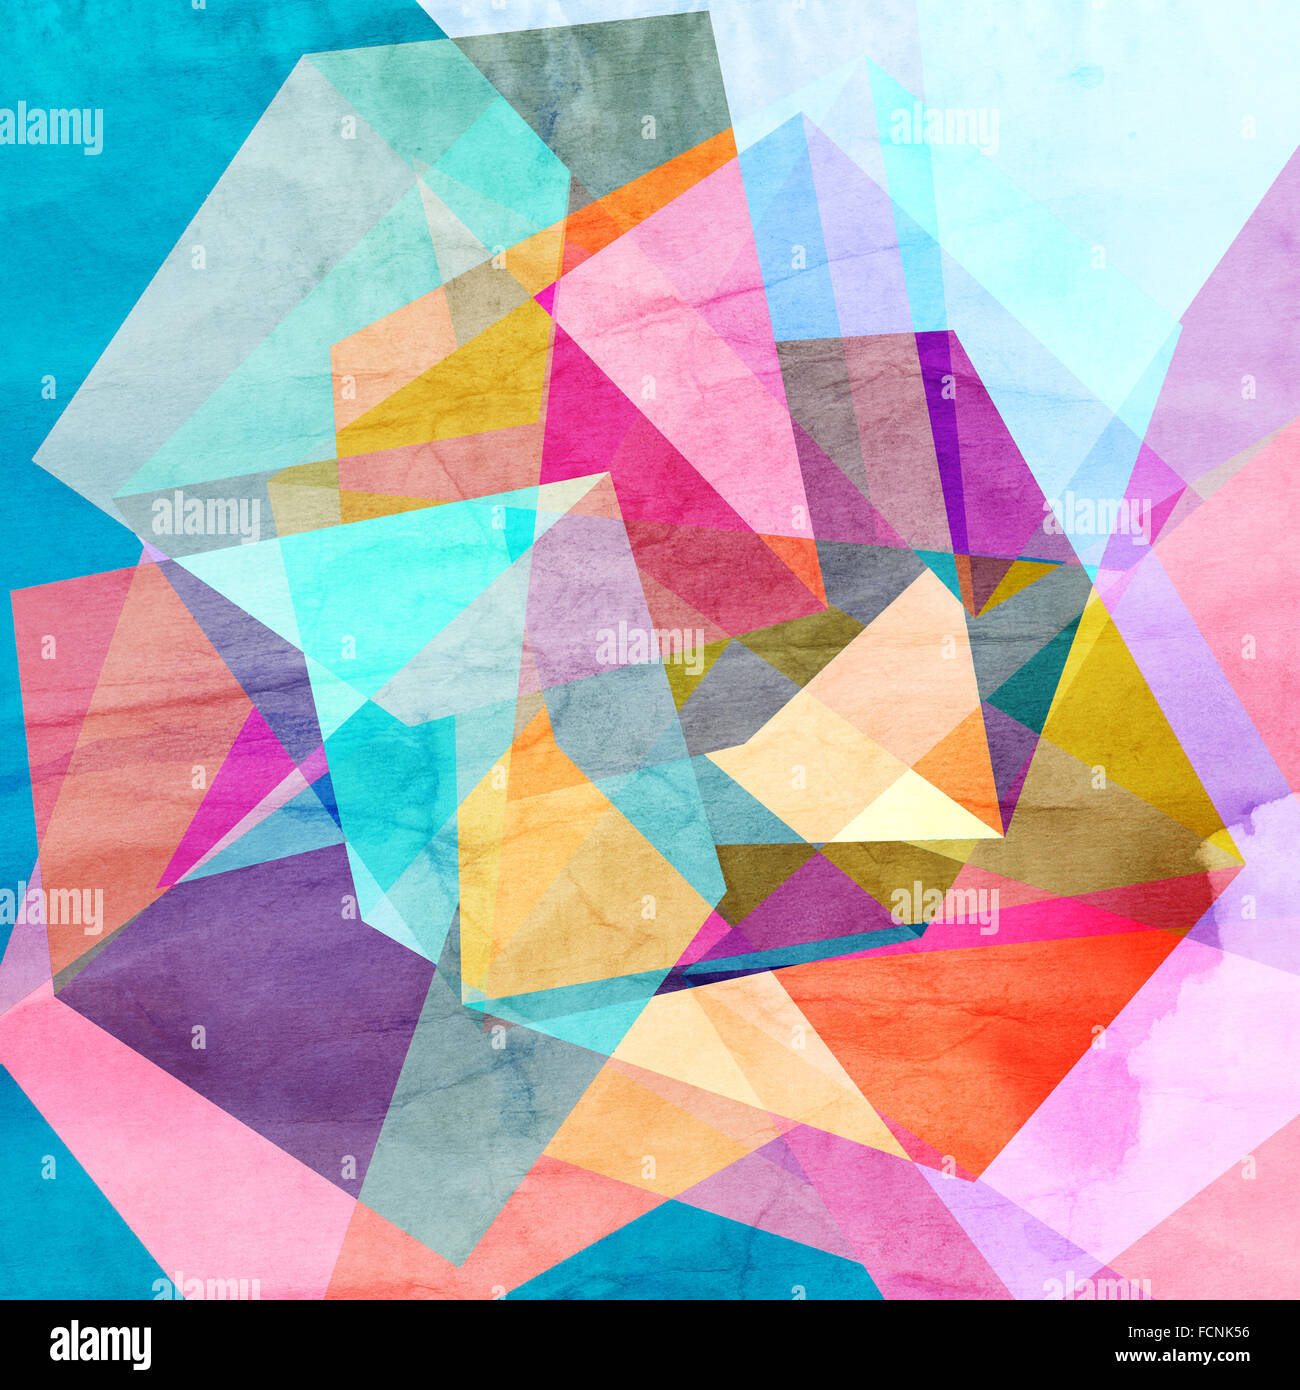 colorful shapes background created - photo #9